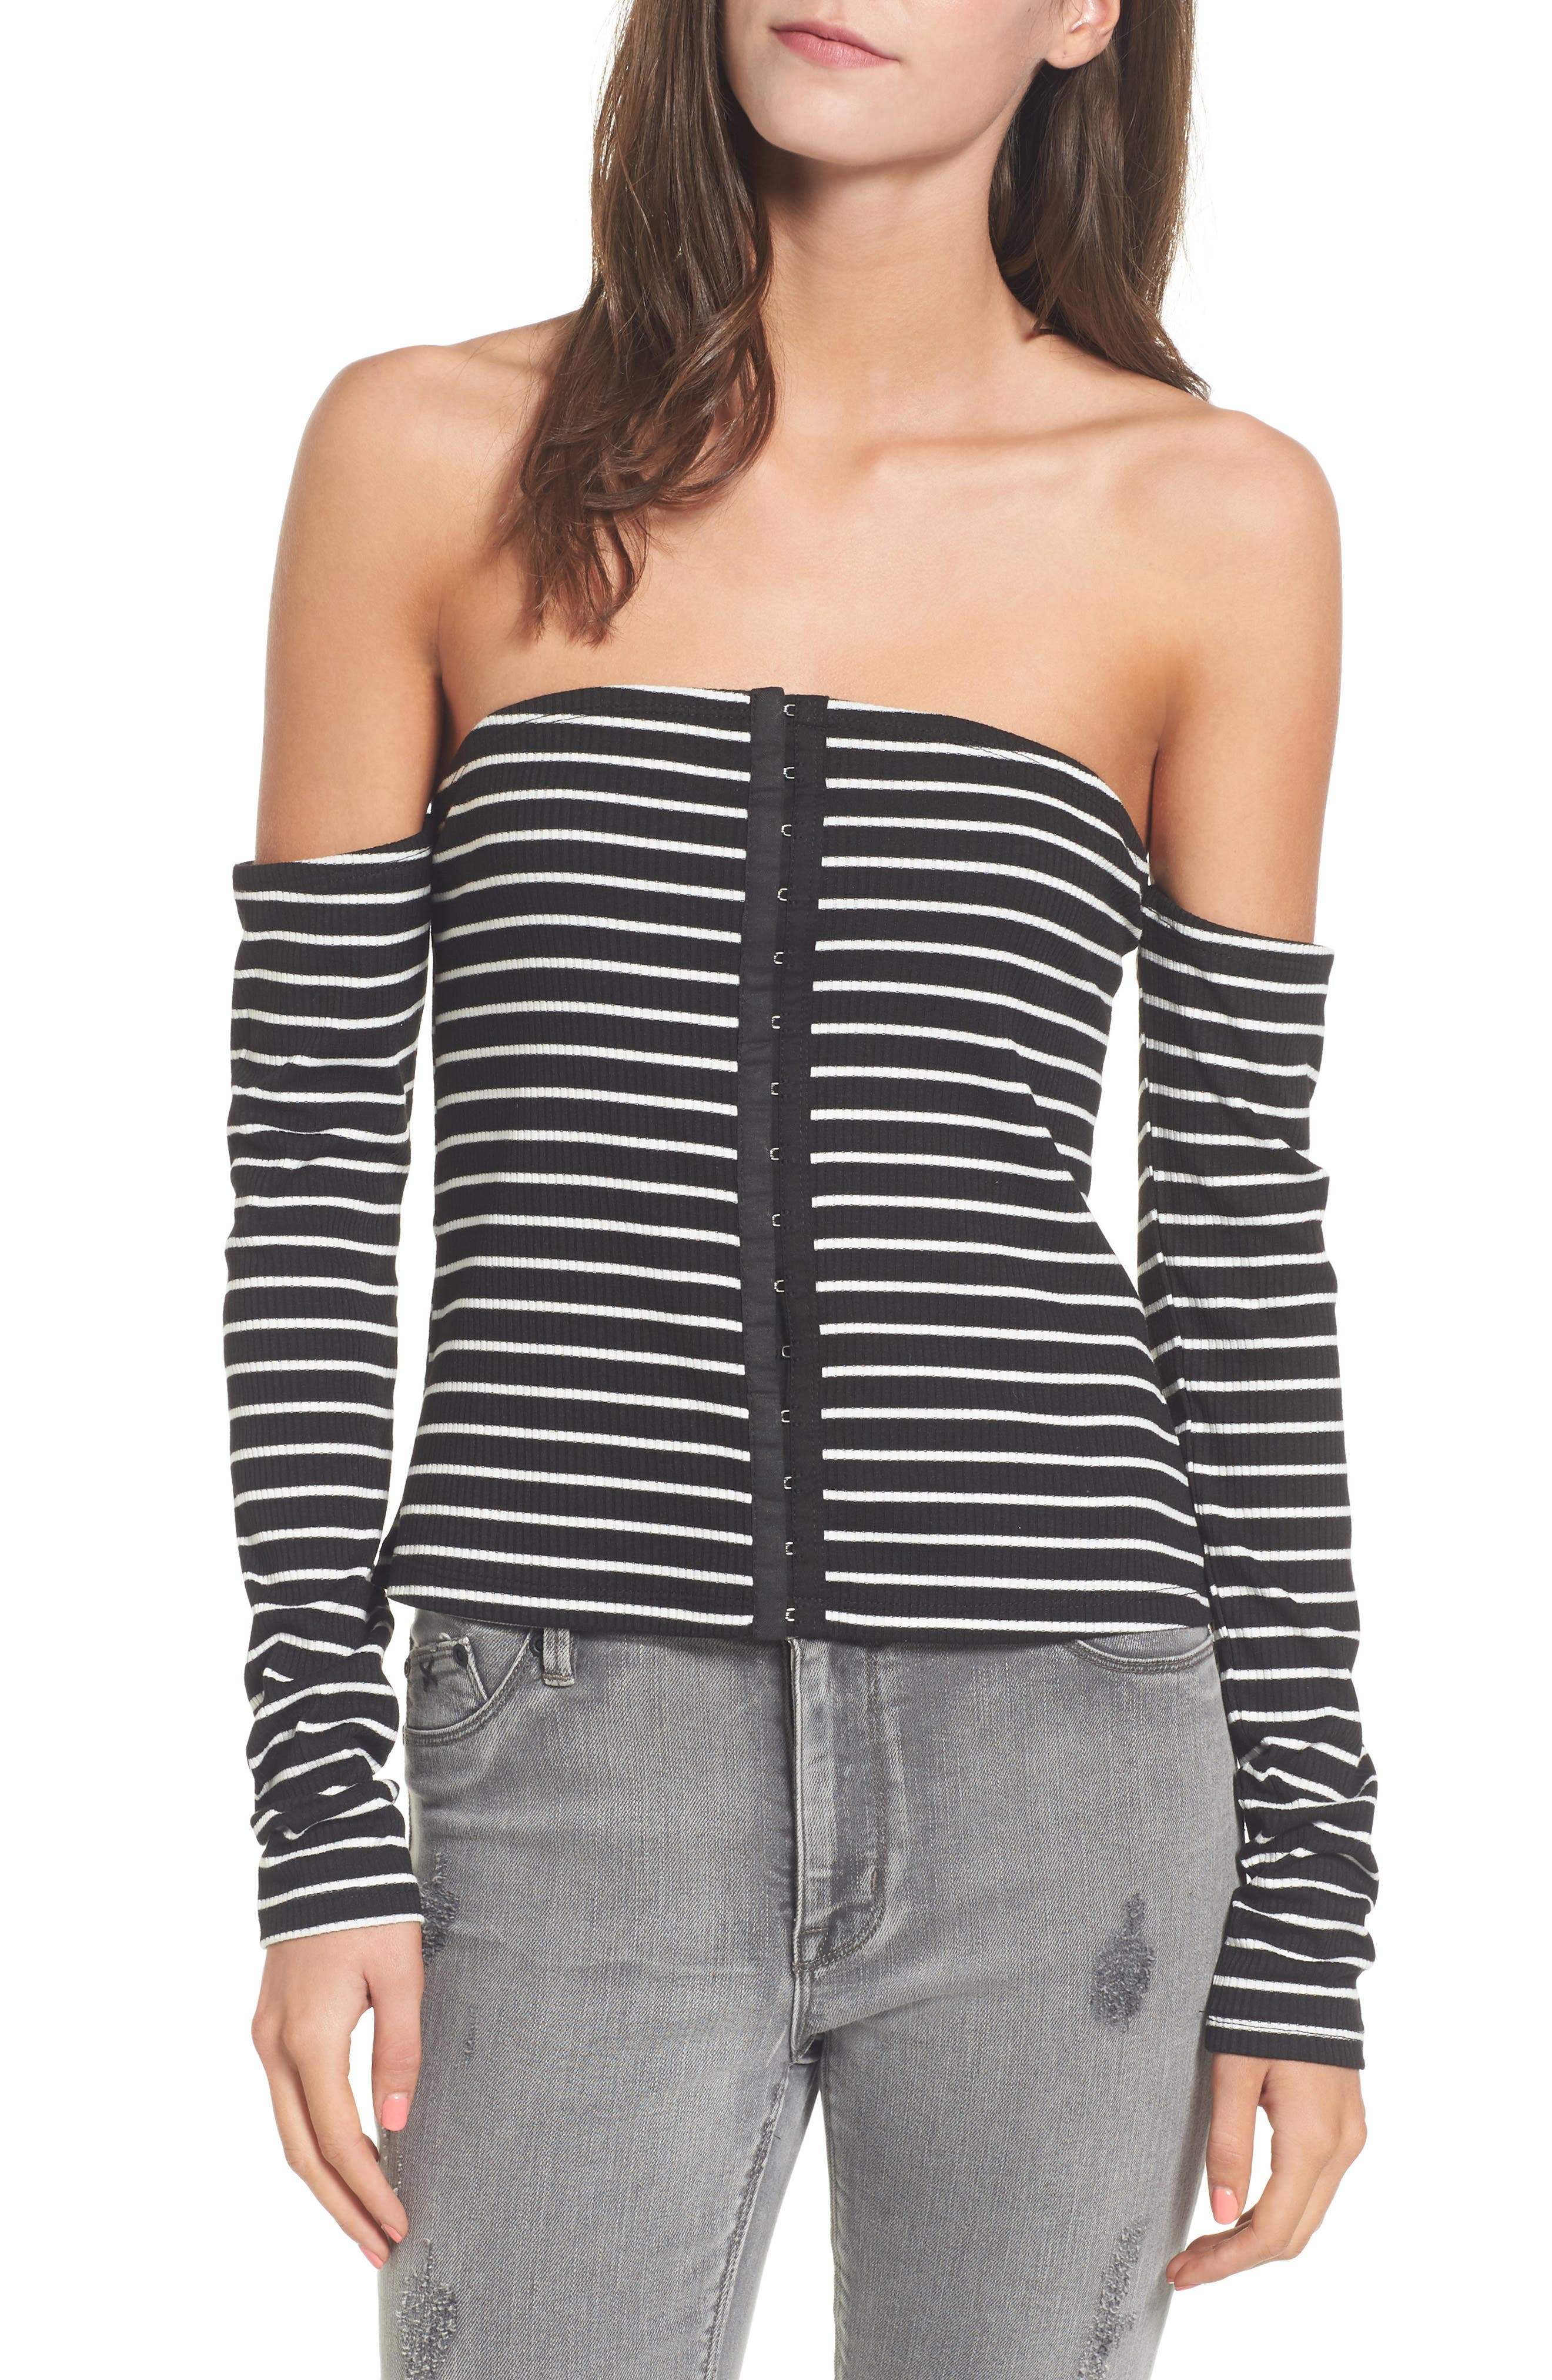 Mimi Chica Stripe Off the Shoulder Top